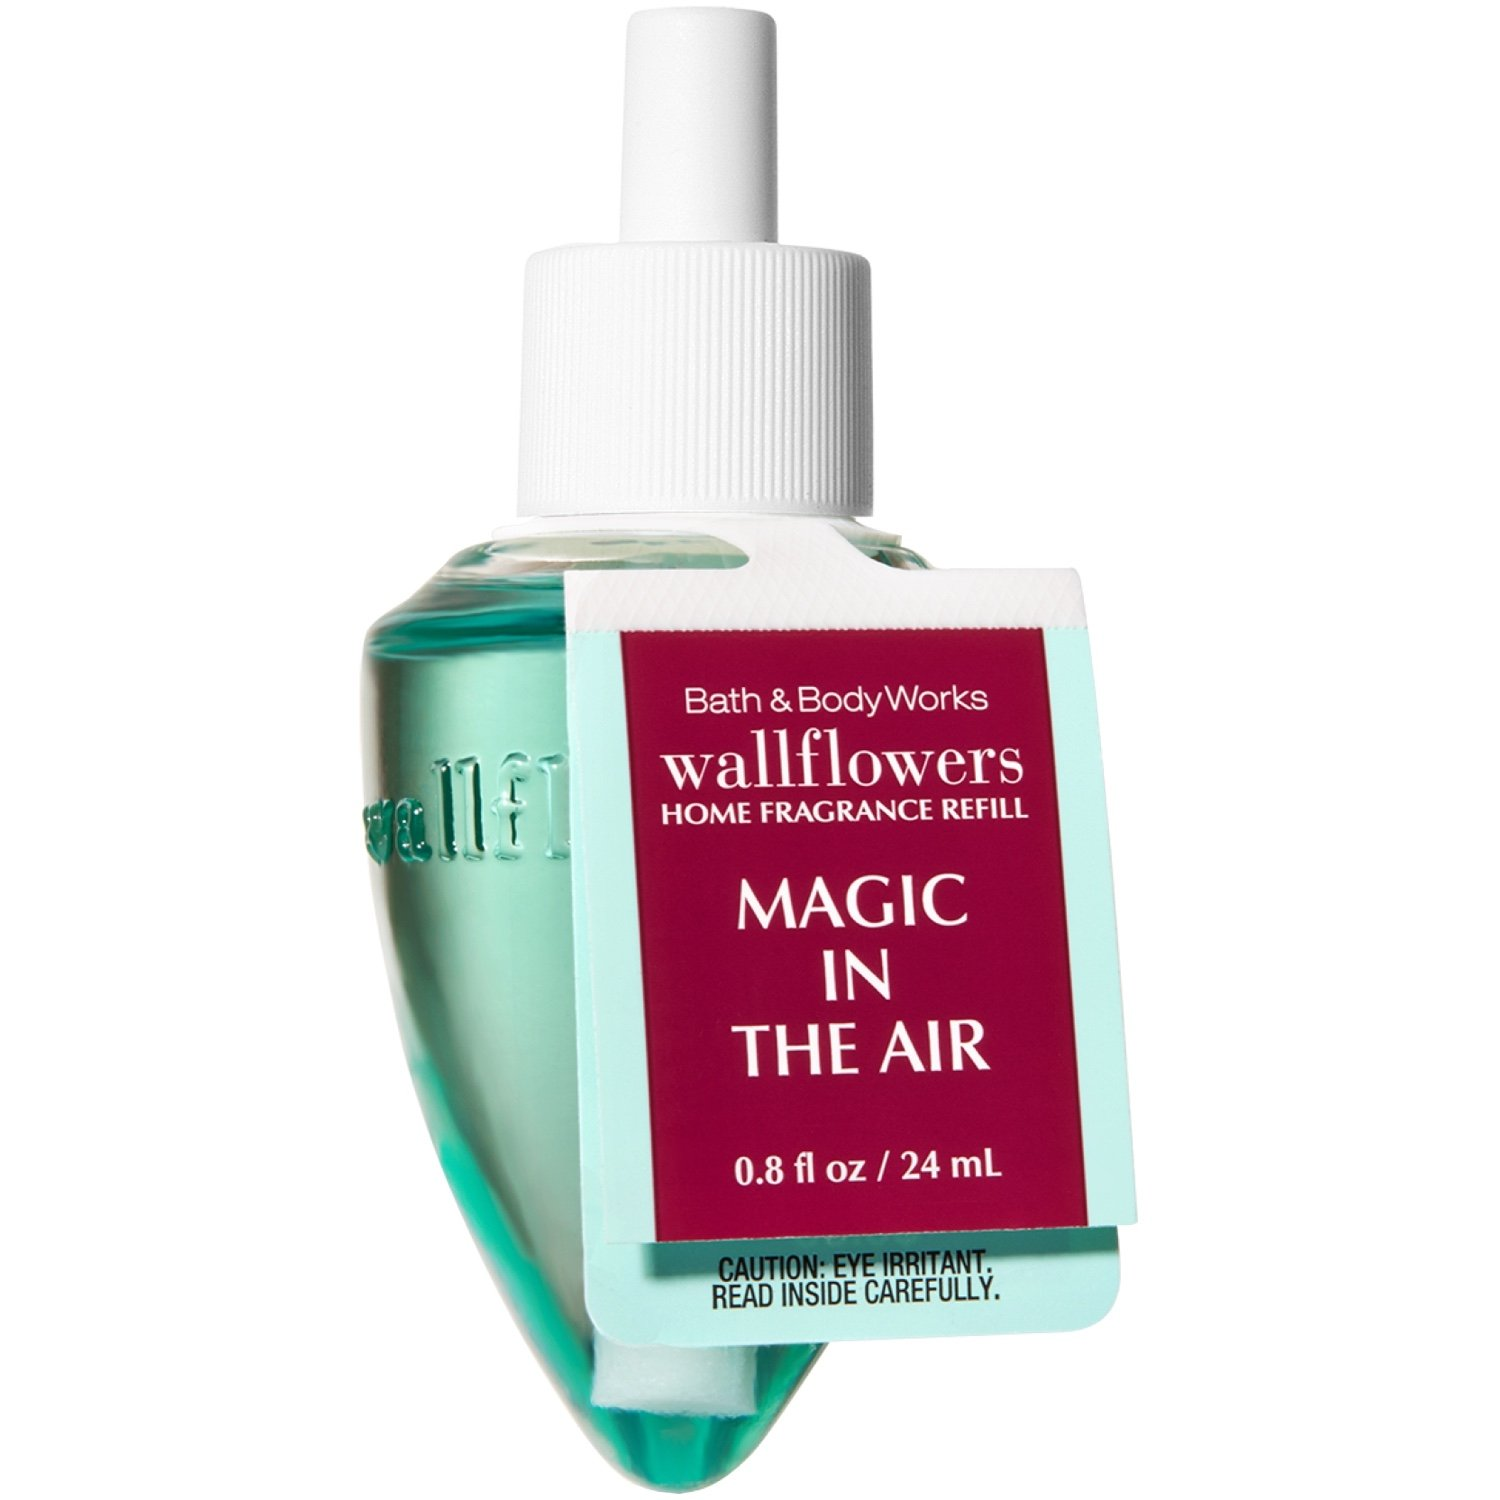 Bath and Body Works Magic In The Air Wallflowers Home Fragrance Refill Bulb